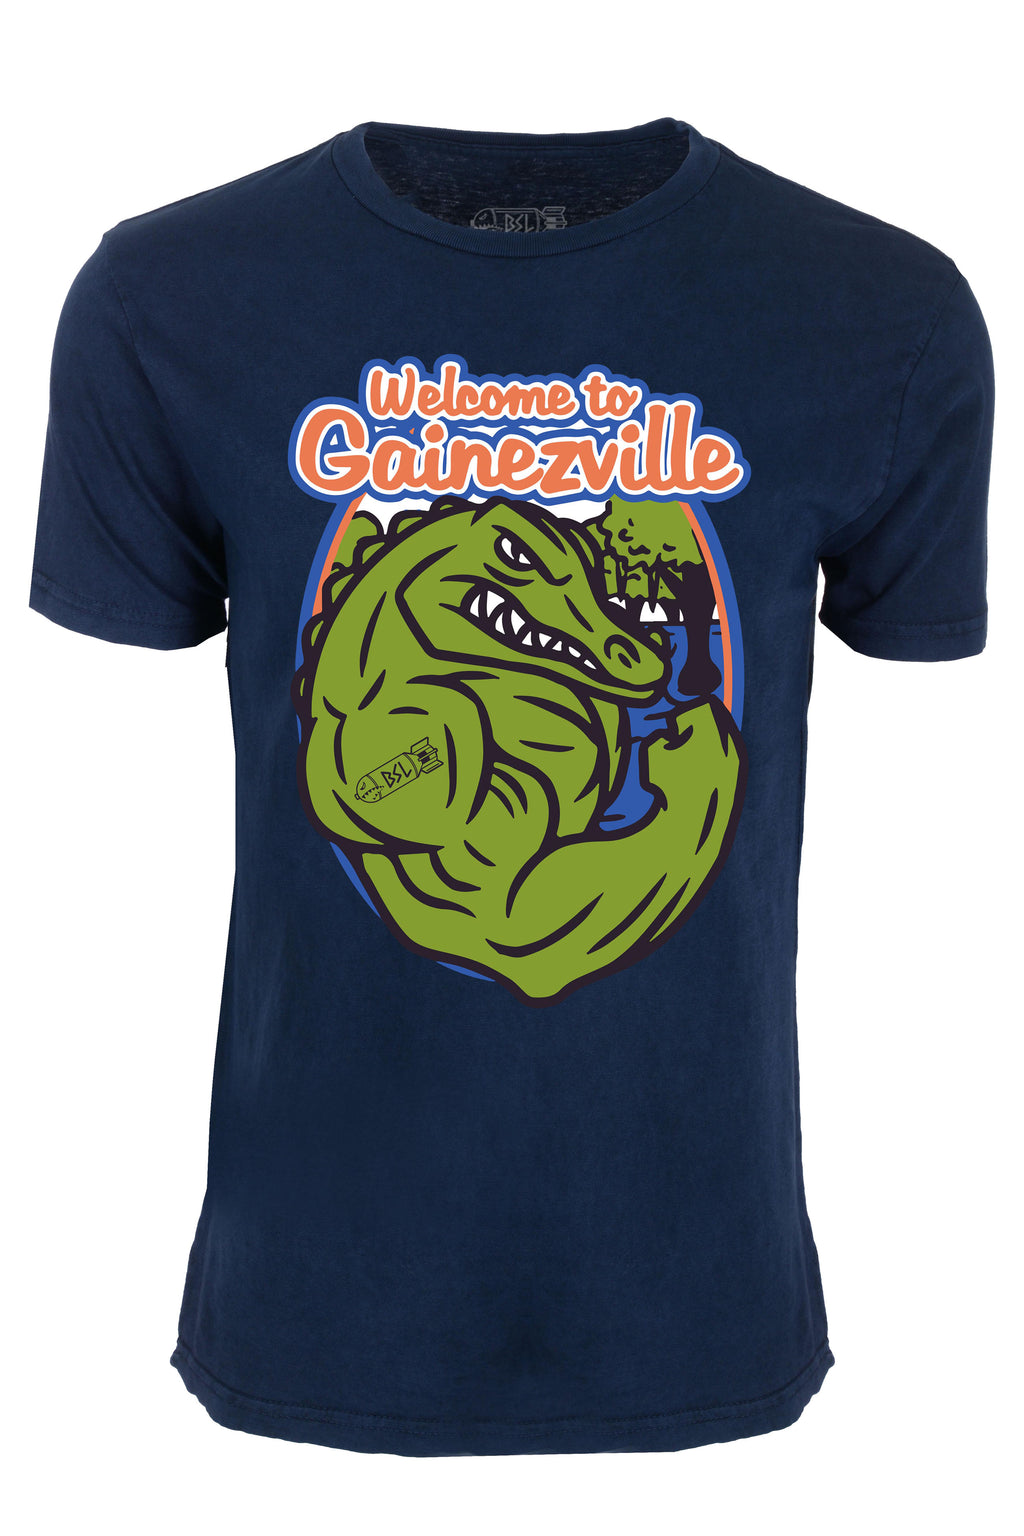 the best attitude 2bd1b e8de1 Gainezville College Tee - Vintage Blue